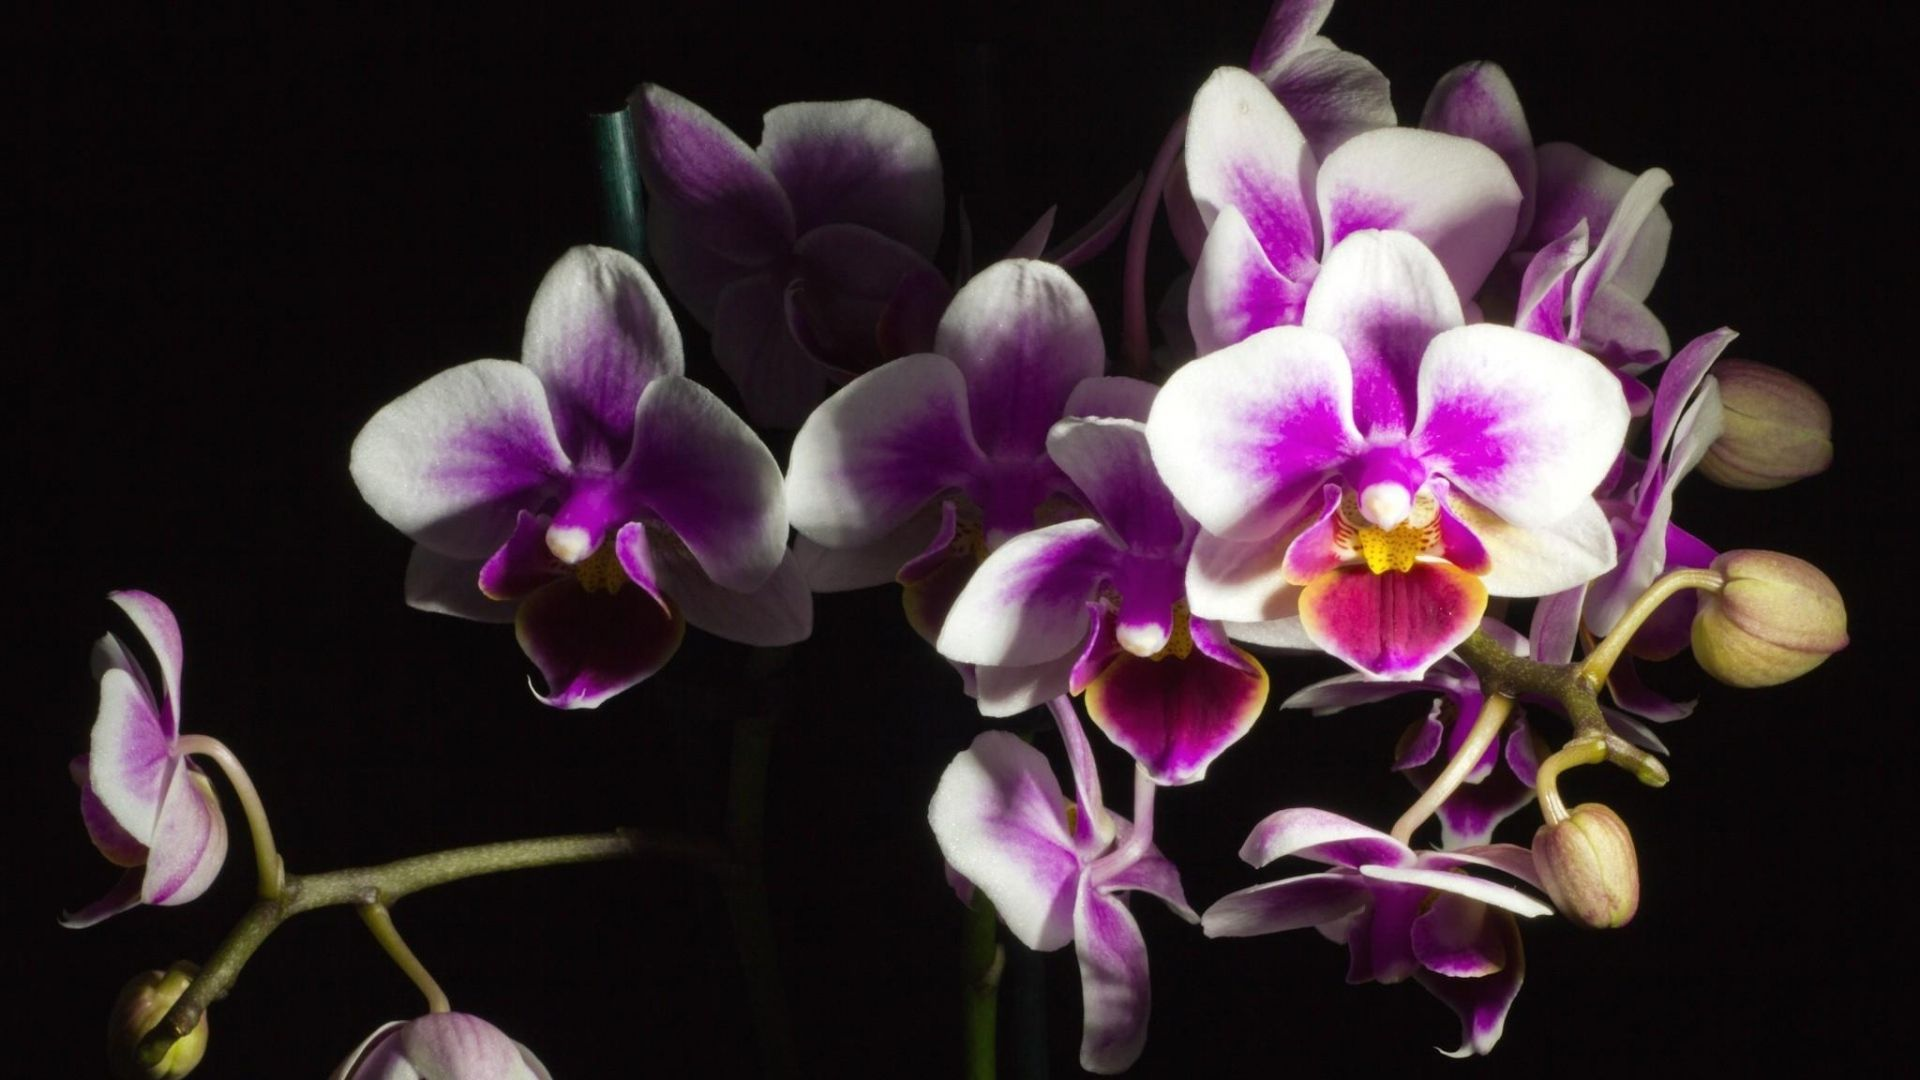 Download Wallpaper 1920x1080 Orchid Flower Black Background Beautiful Full Hd 1080p Hd Background Orchids Orchid Nursery Orchid Flower